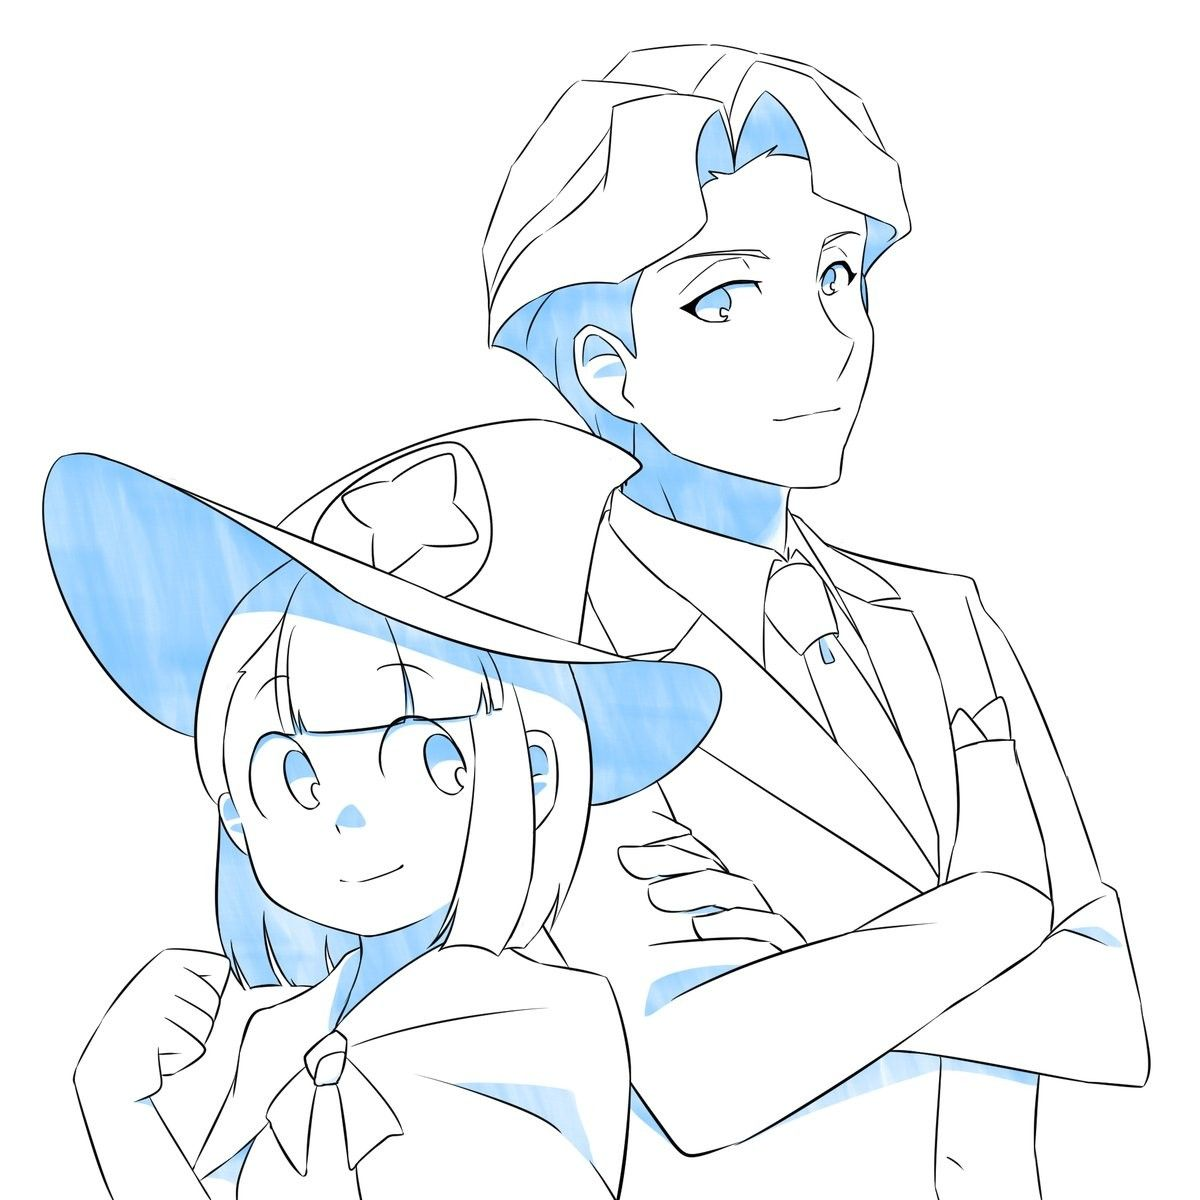 Andrew x akko // Ankko // Little Witch Academia // Lwa